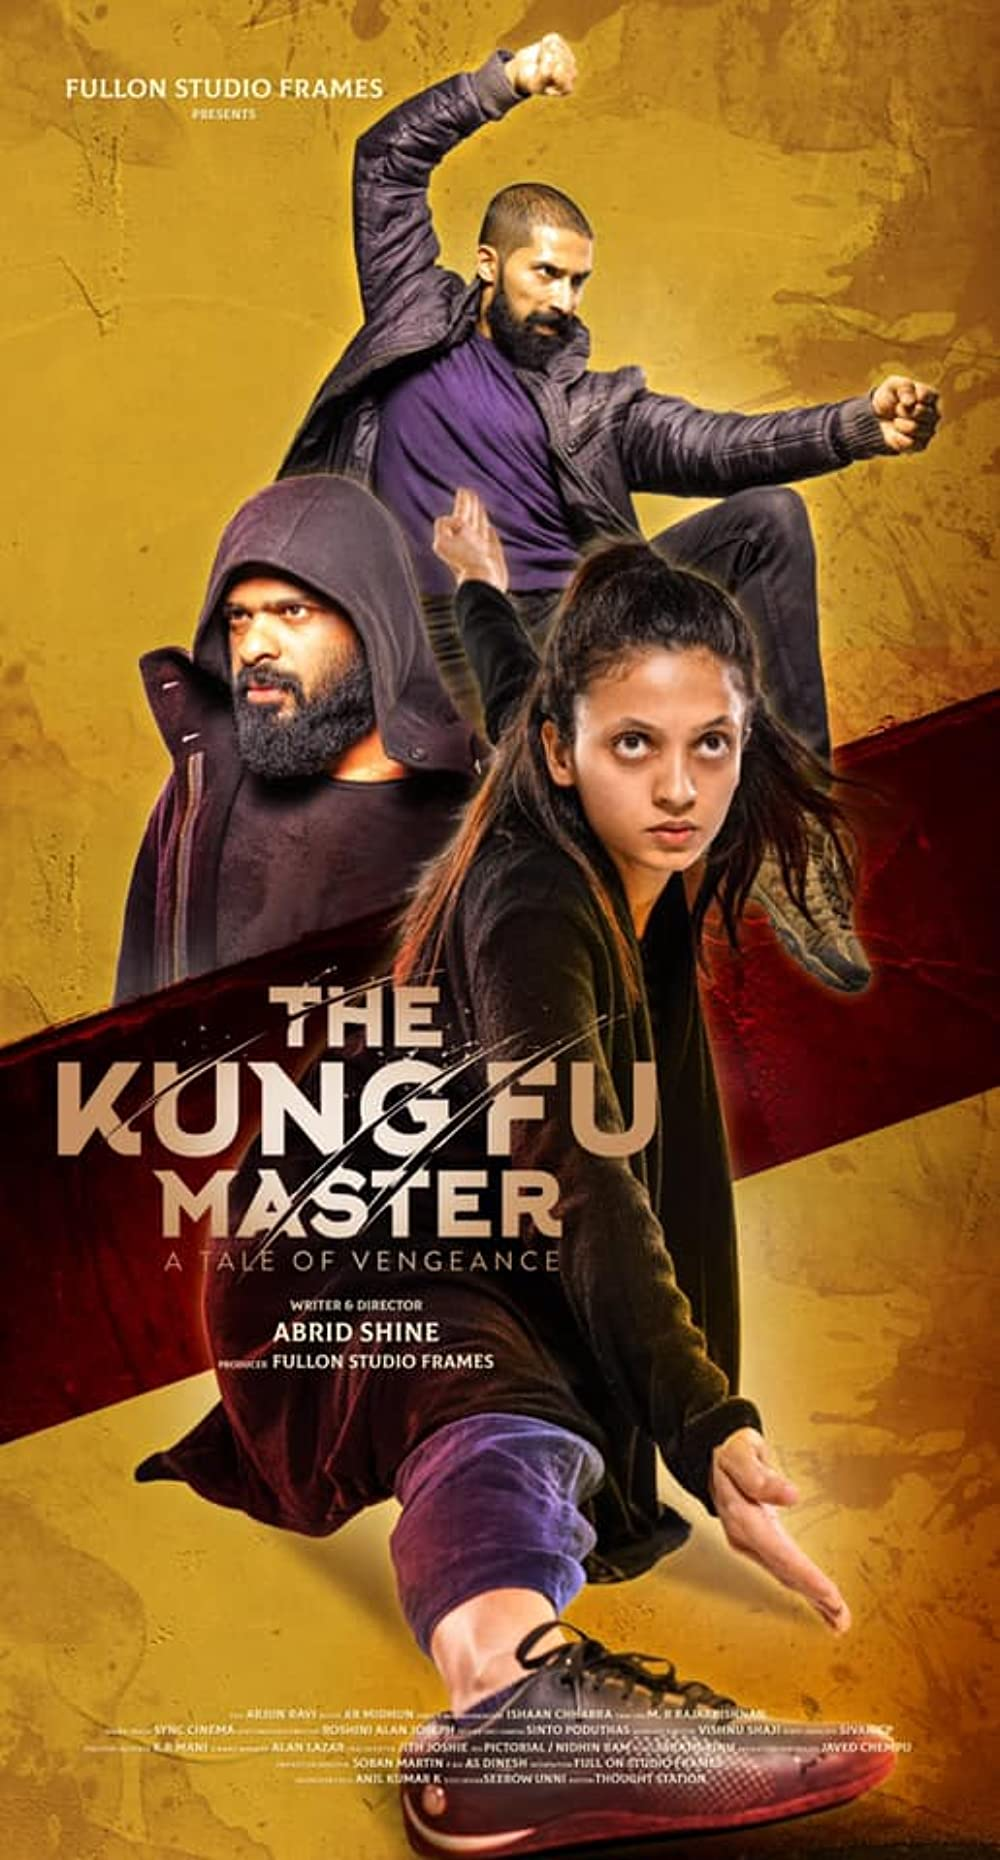 Download The Kung Fu Master 2020 Hindi Dual Audio 480p HDTVRip 400MB